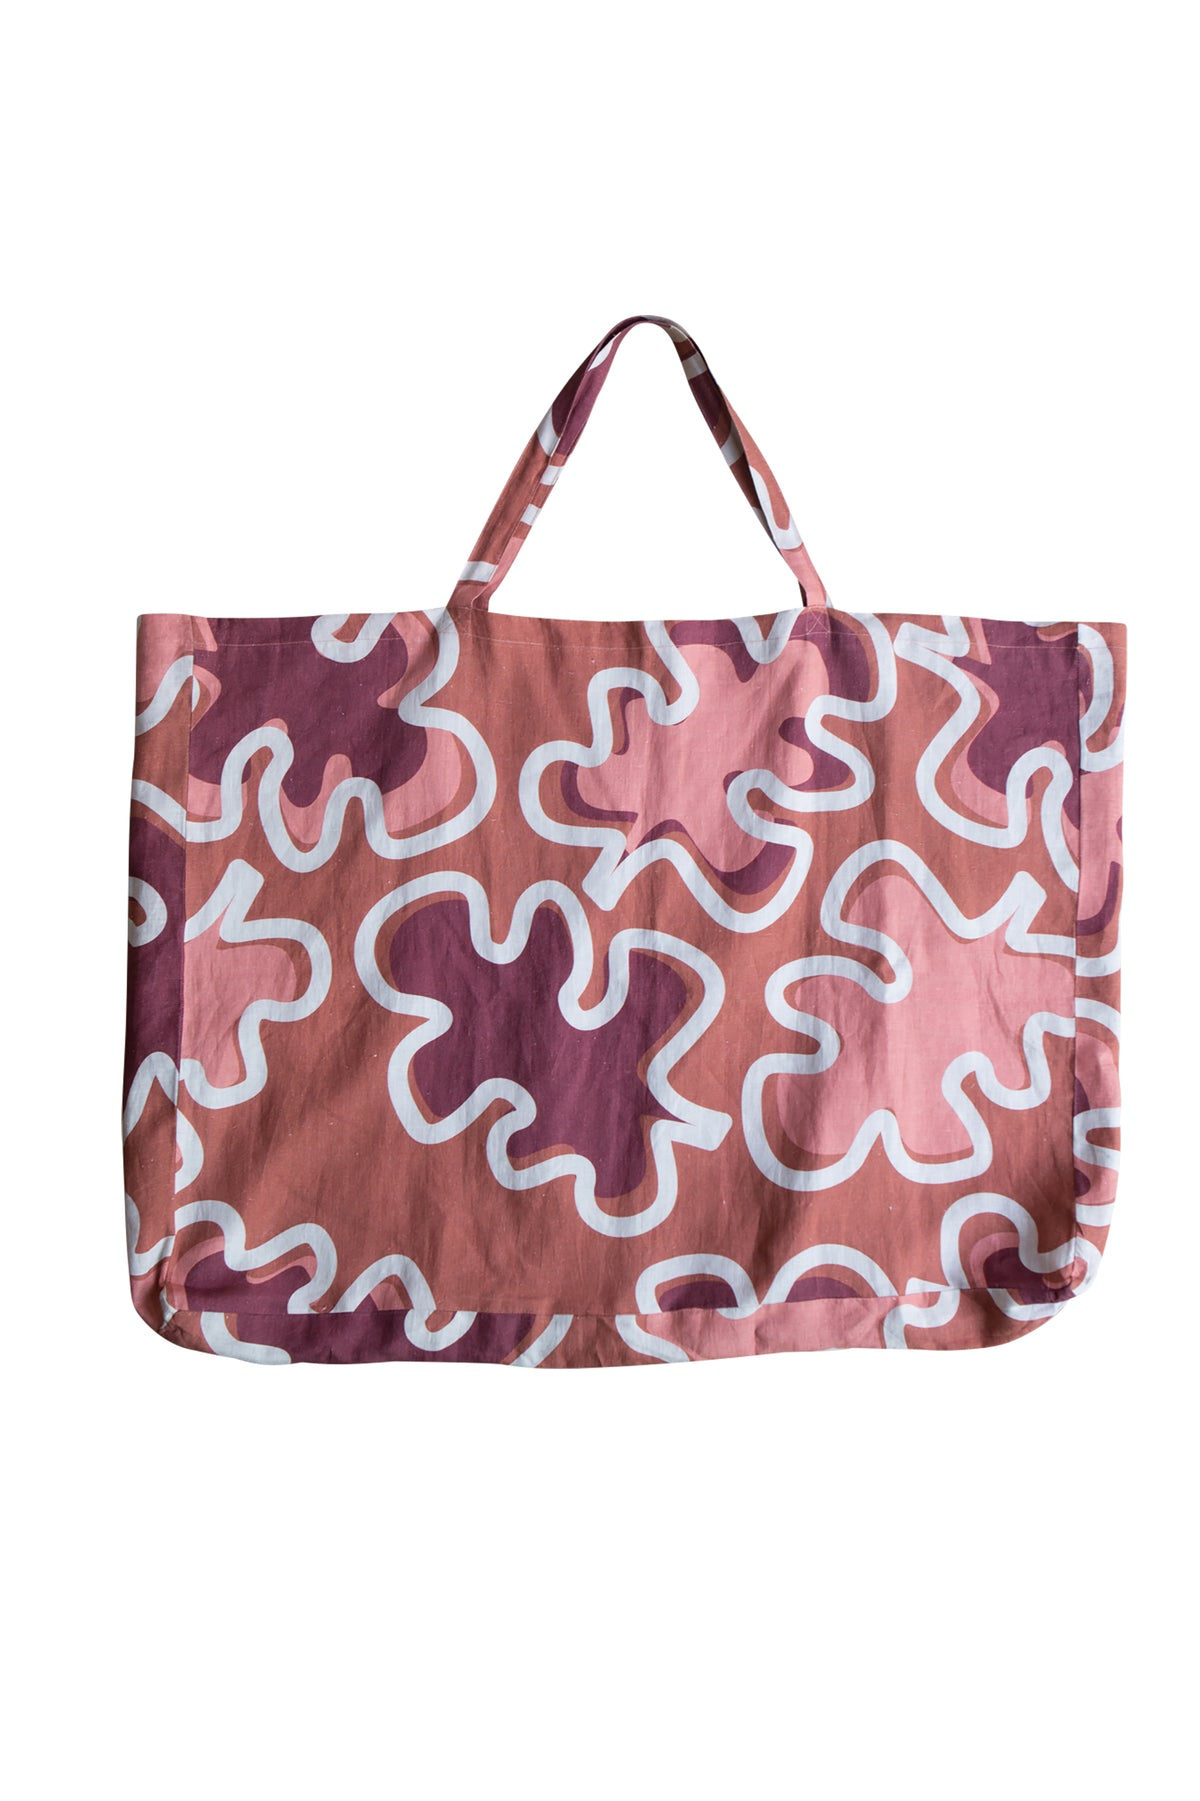 Heimstone x Gabrielle Paris - Totebag in XXL leaf print